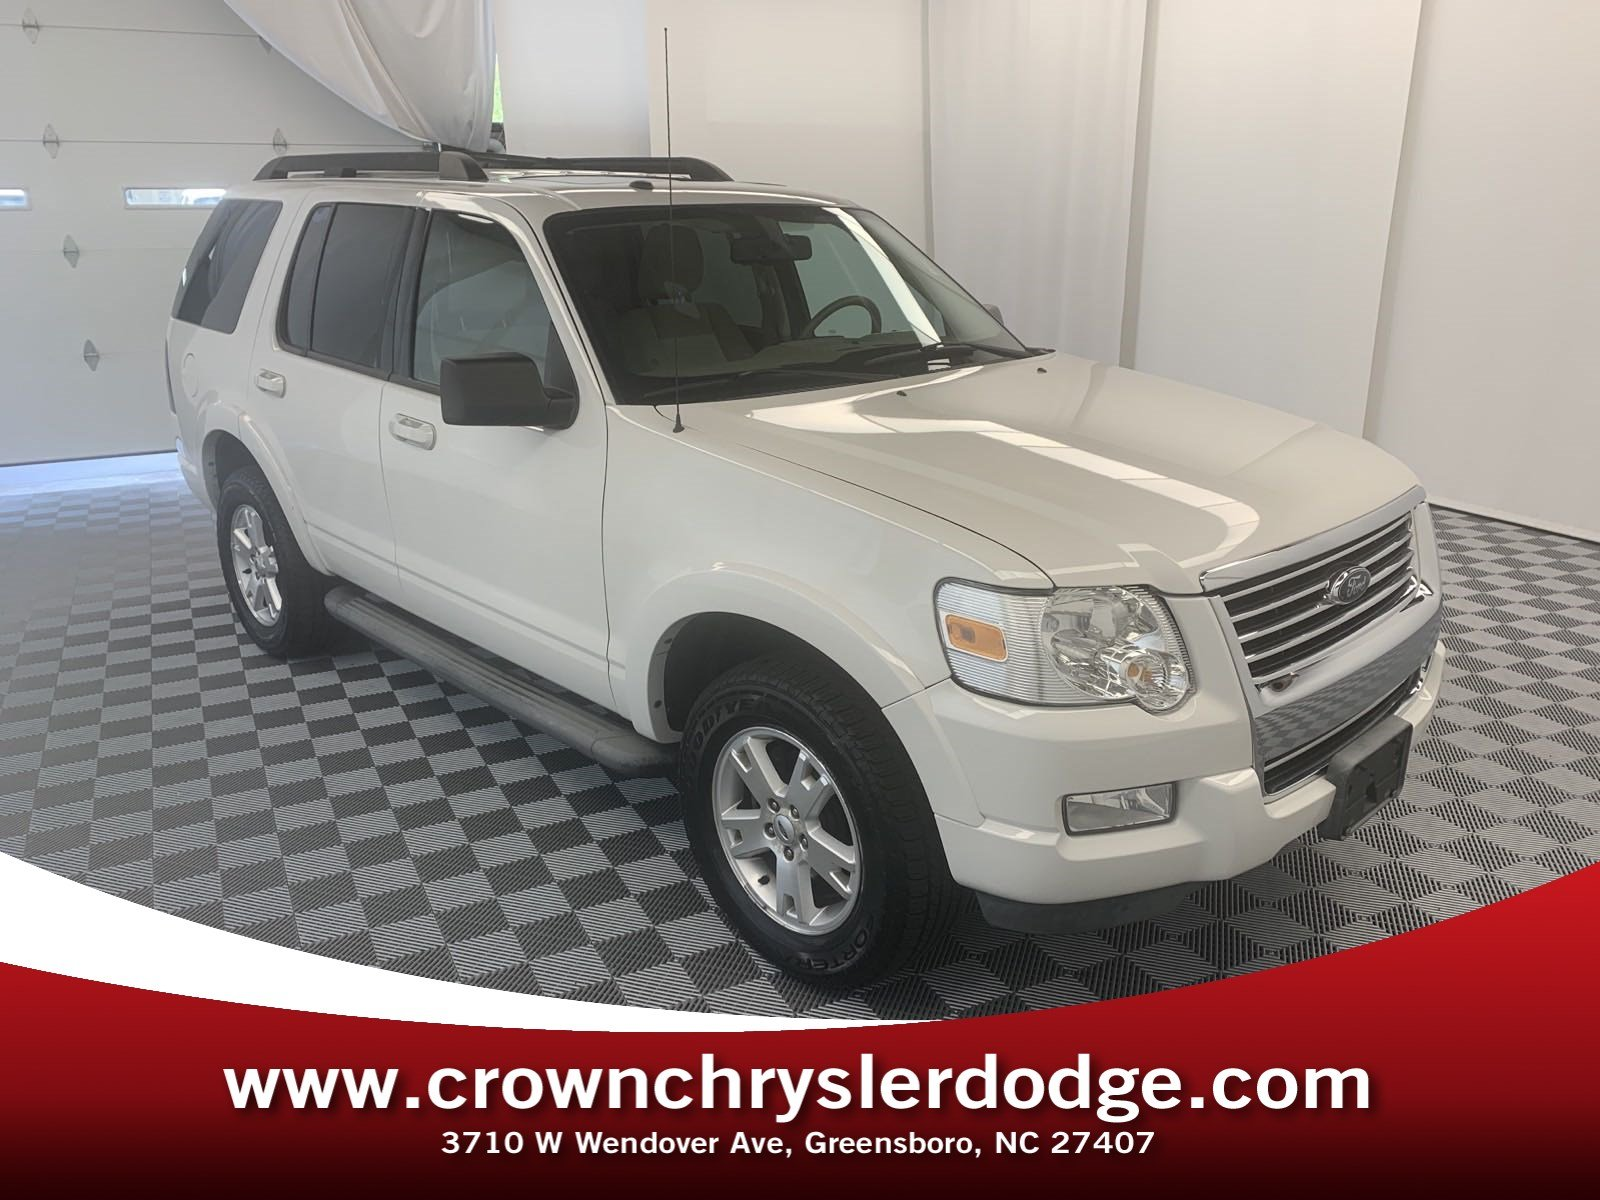 2010 Ford Explorer XLT SUV